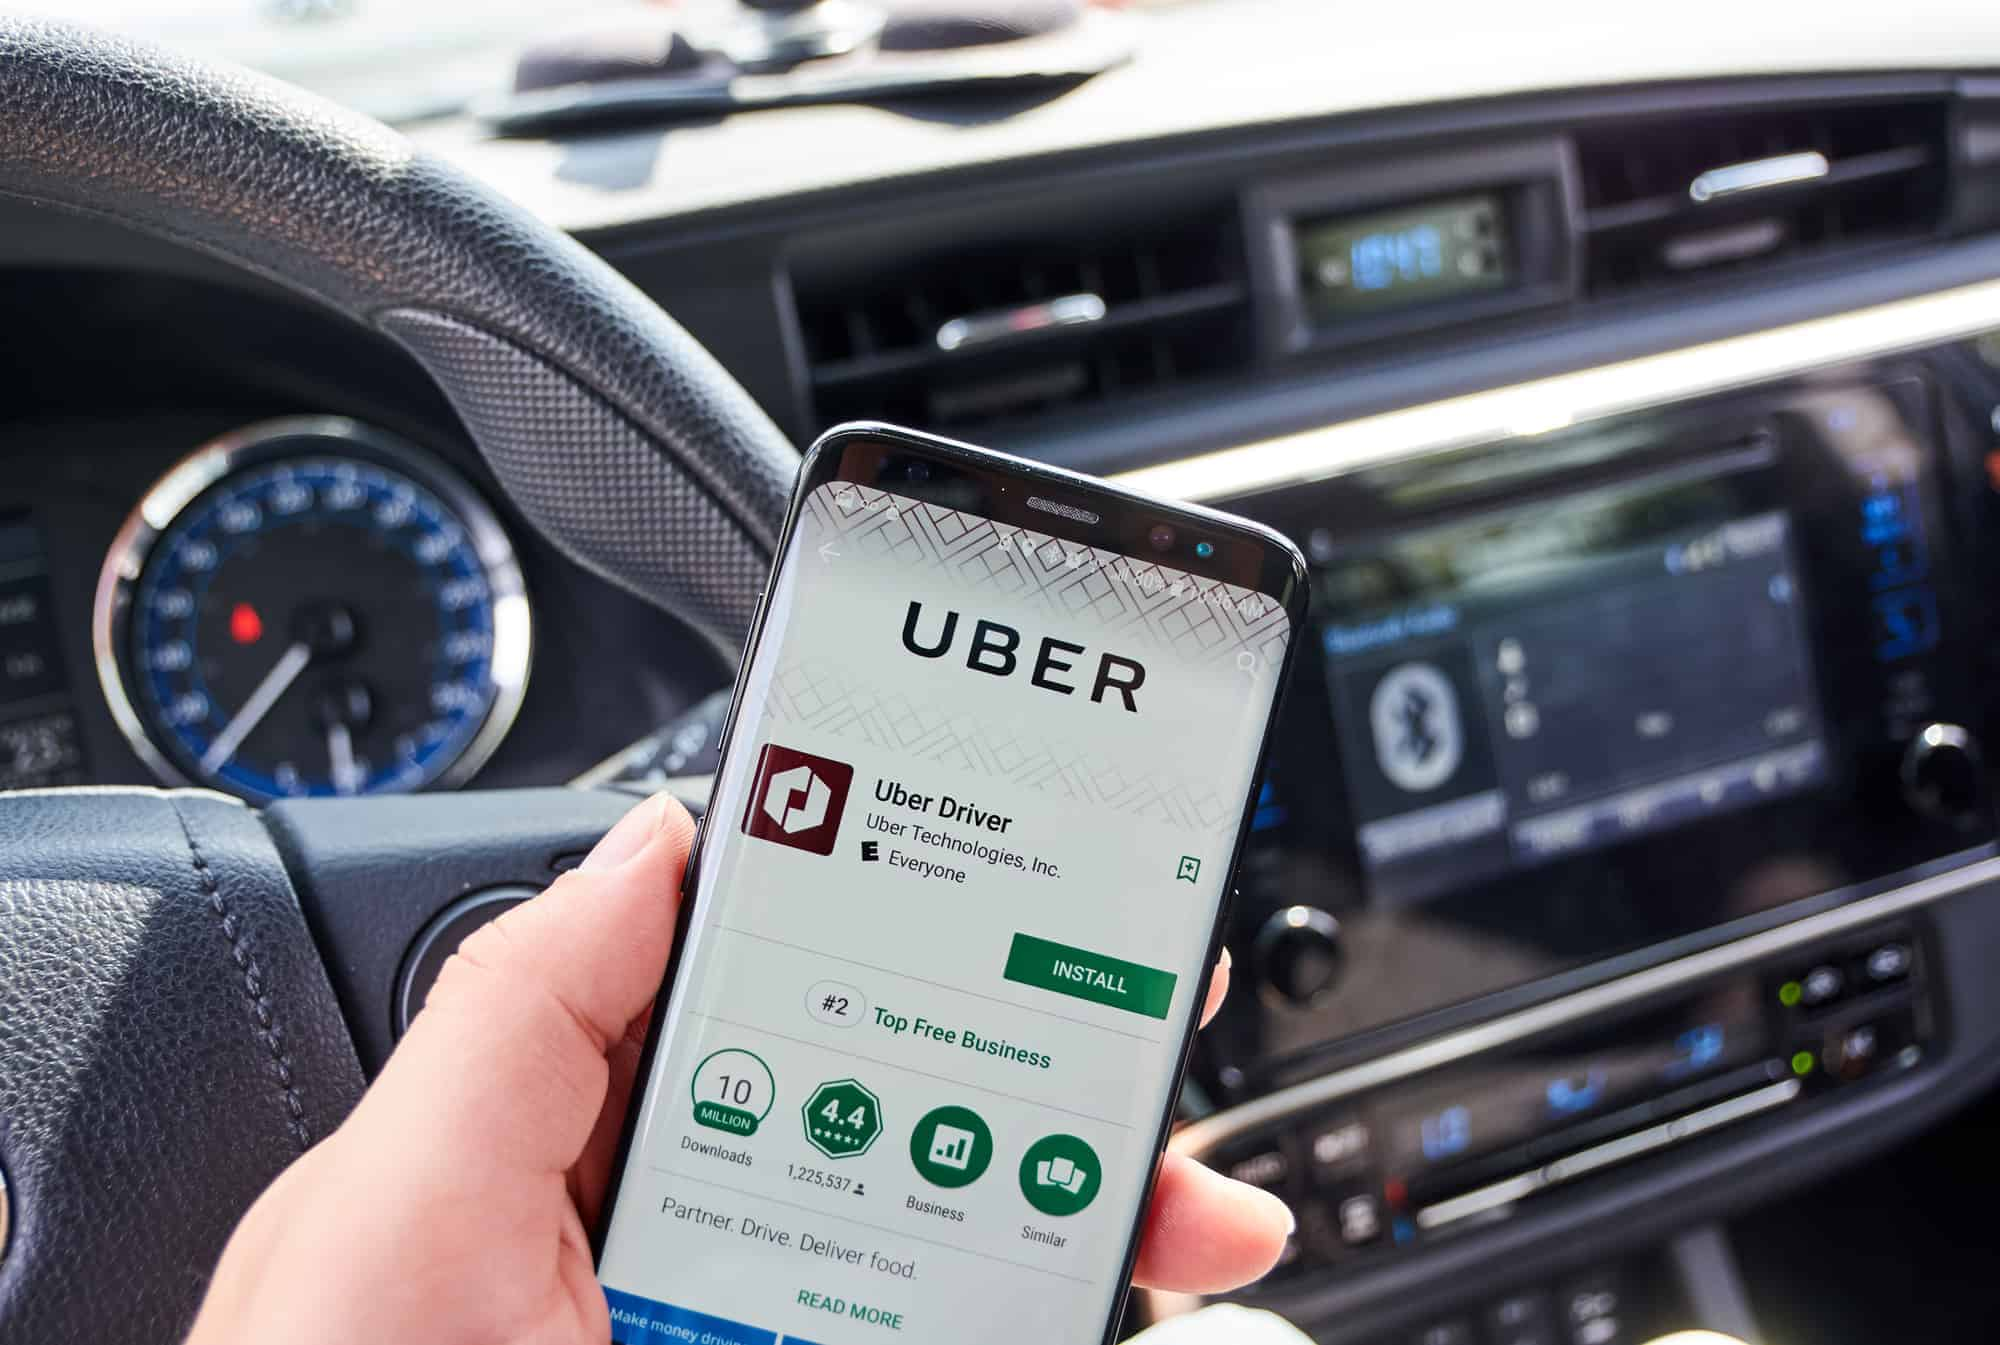 Make money driving with Uber